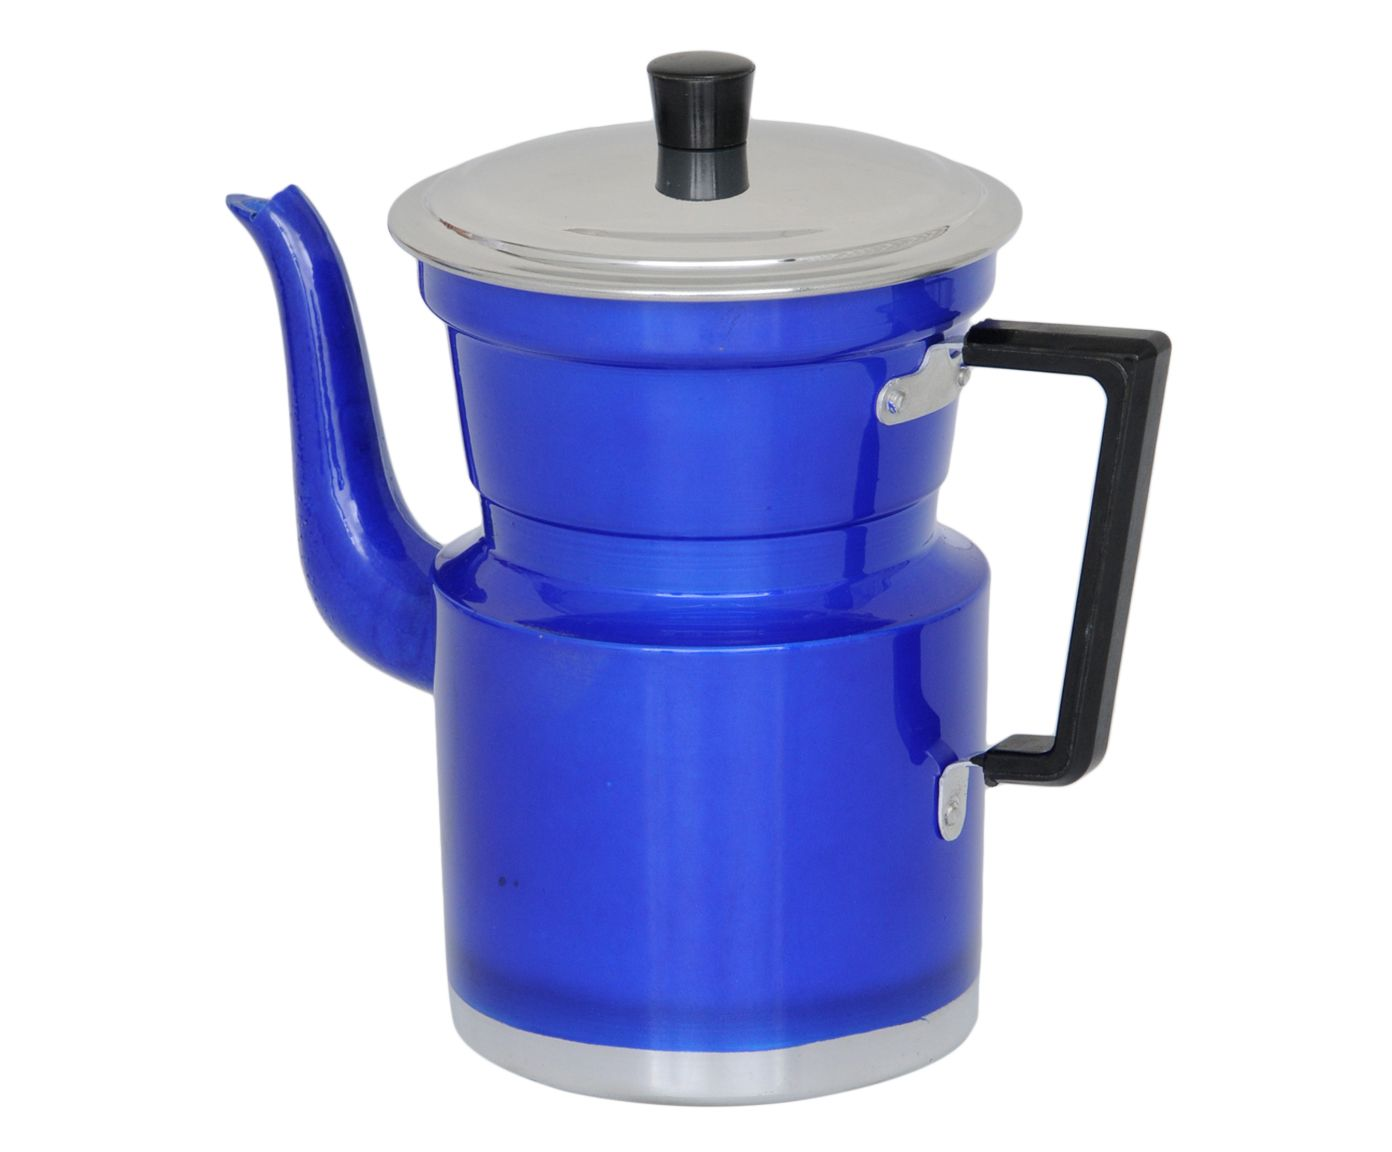 Cafeteira Bowne Azul Real - 1,5L | Westwing.com.br